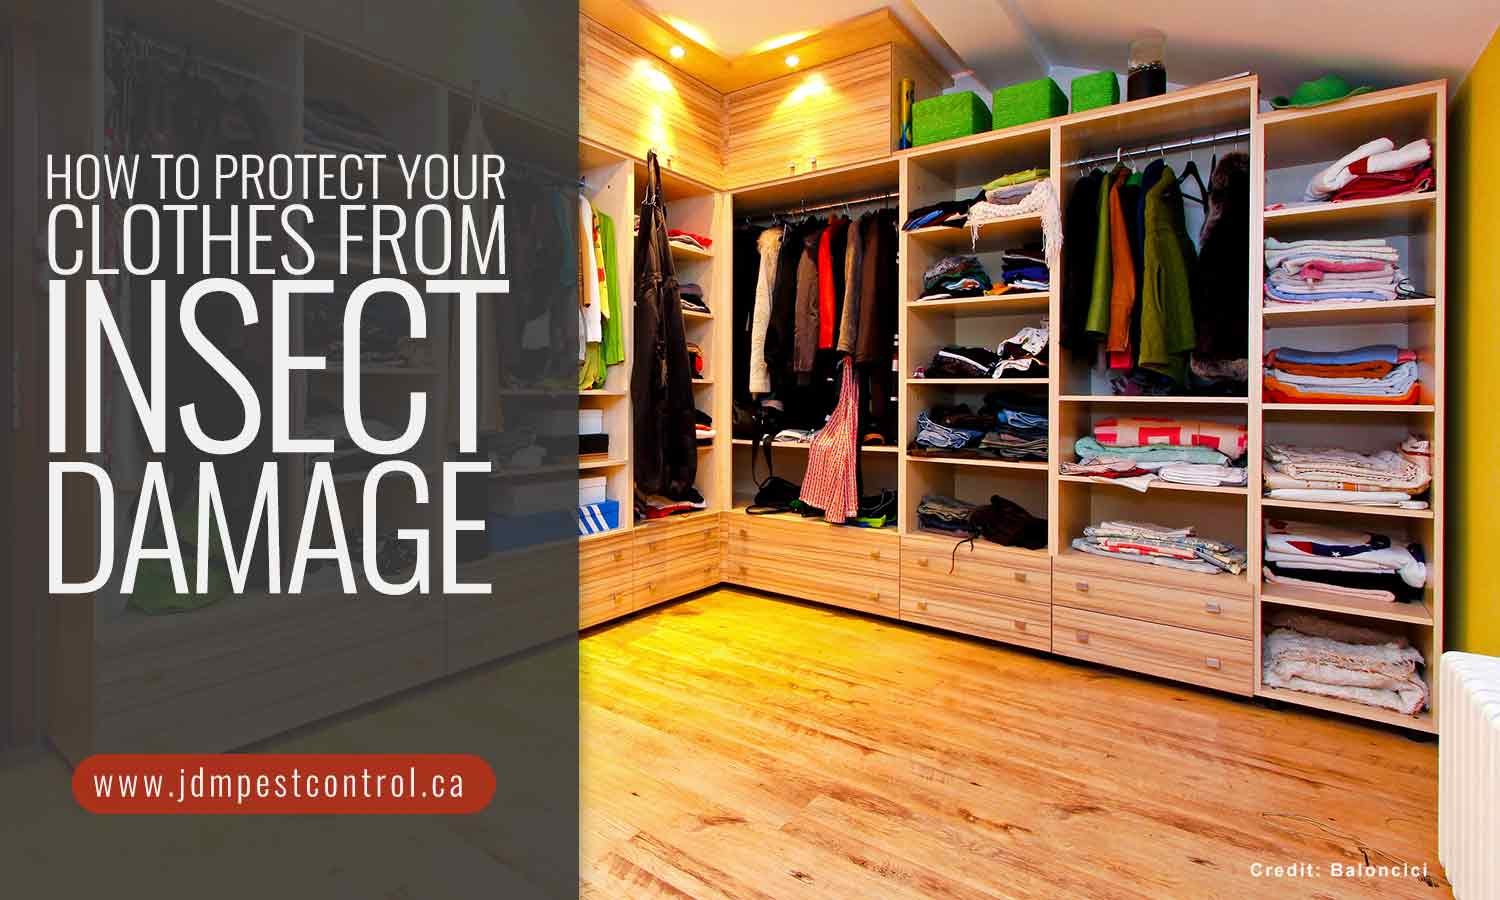 How to Protect Your Clothes from Insect Damage